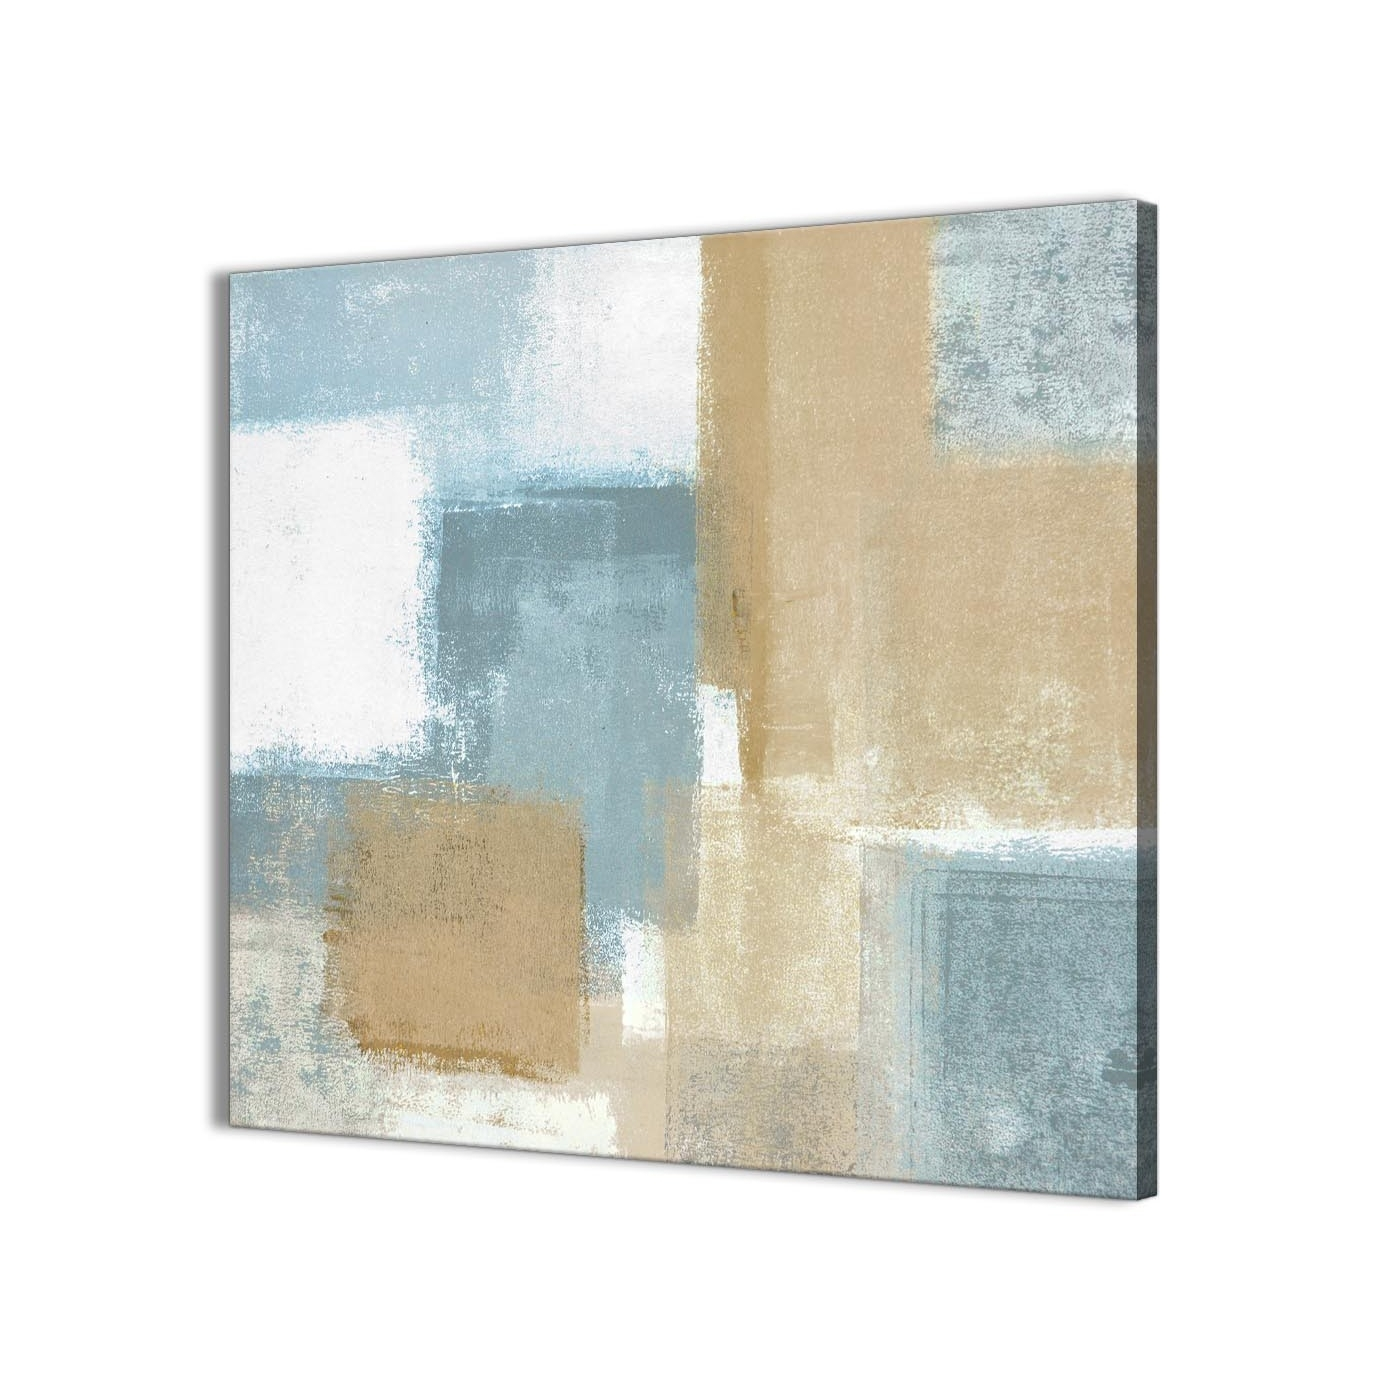 Popular Cheap Oversized Canvas Wall Art Intended For Blue Beige Brown Abstract Painting Canvas Wall Art Print – Modern (View 11 of 15)